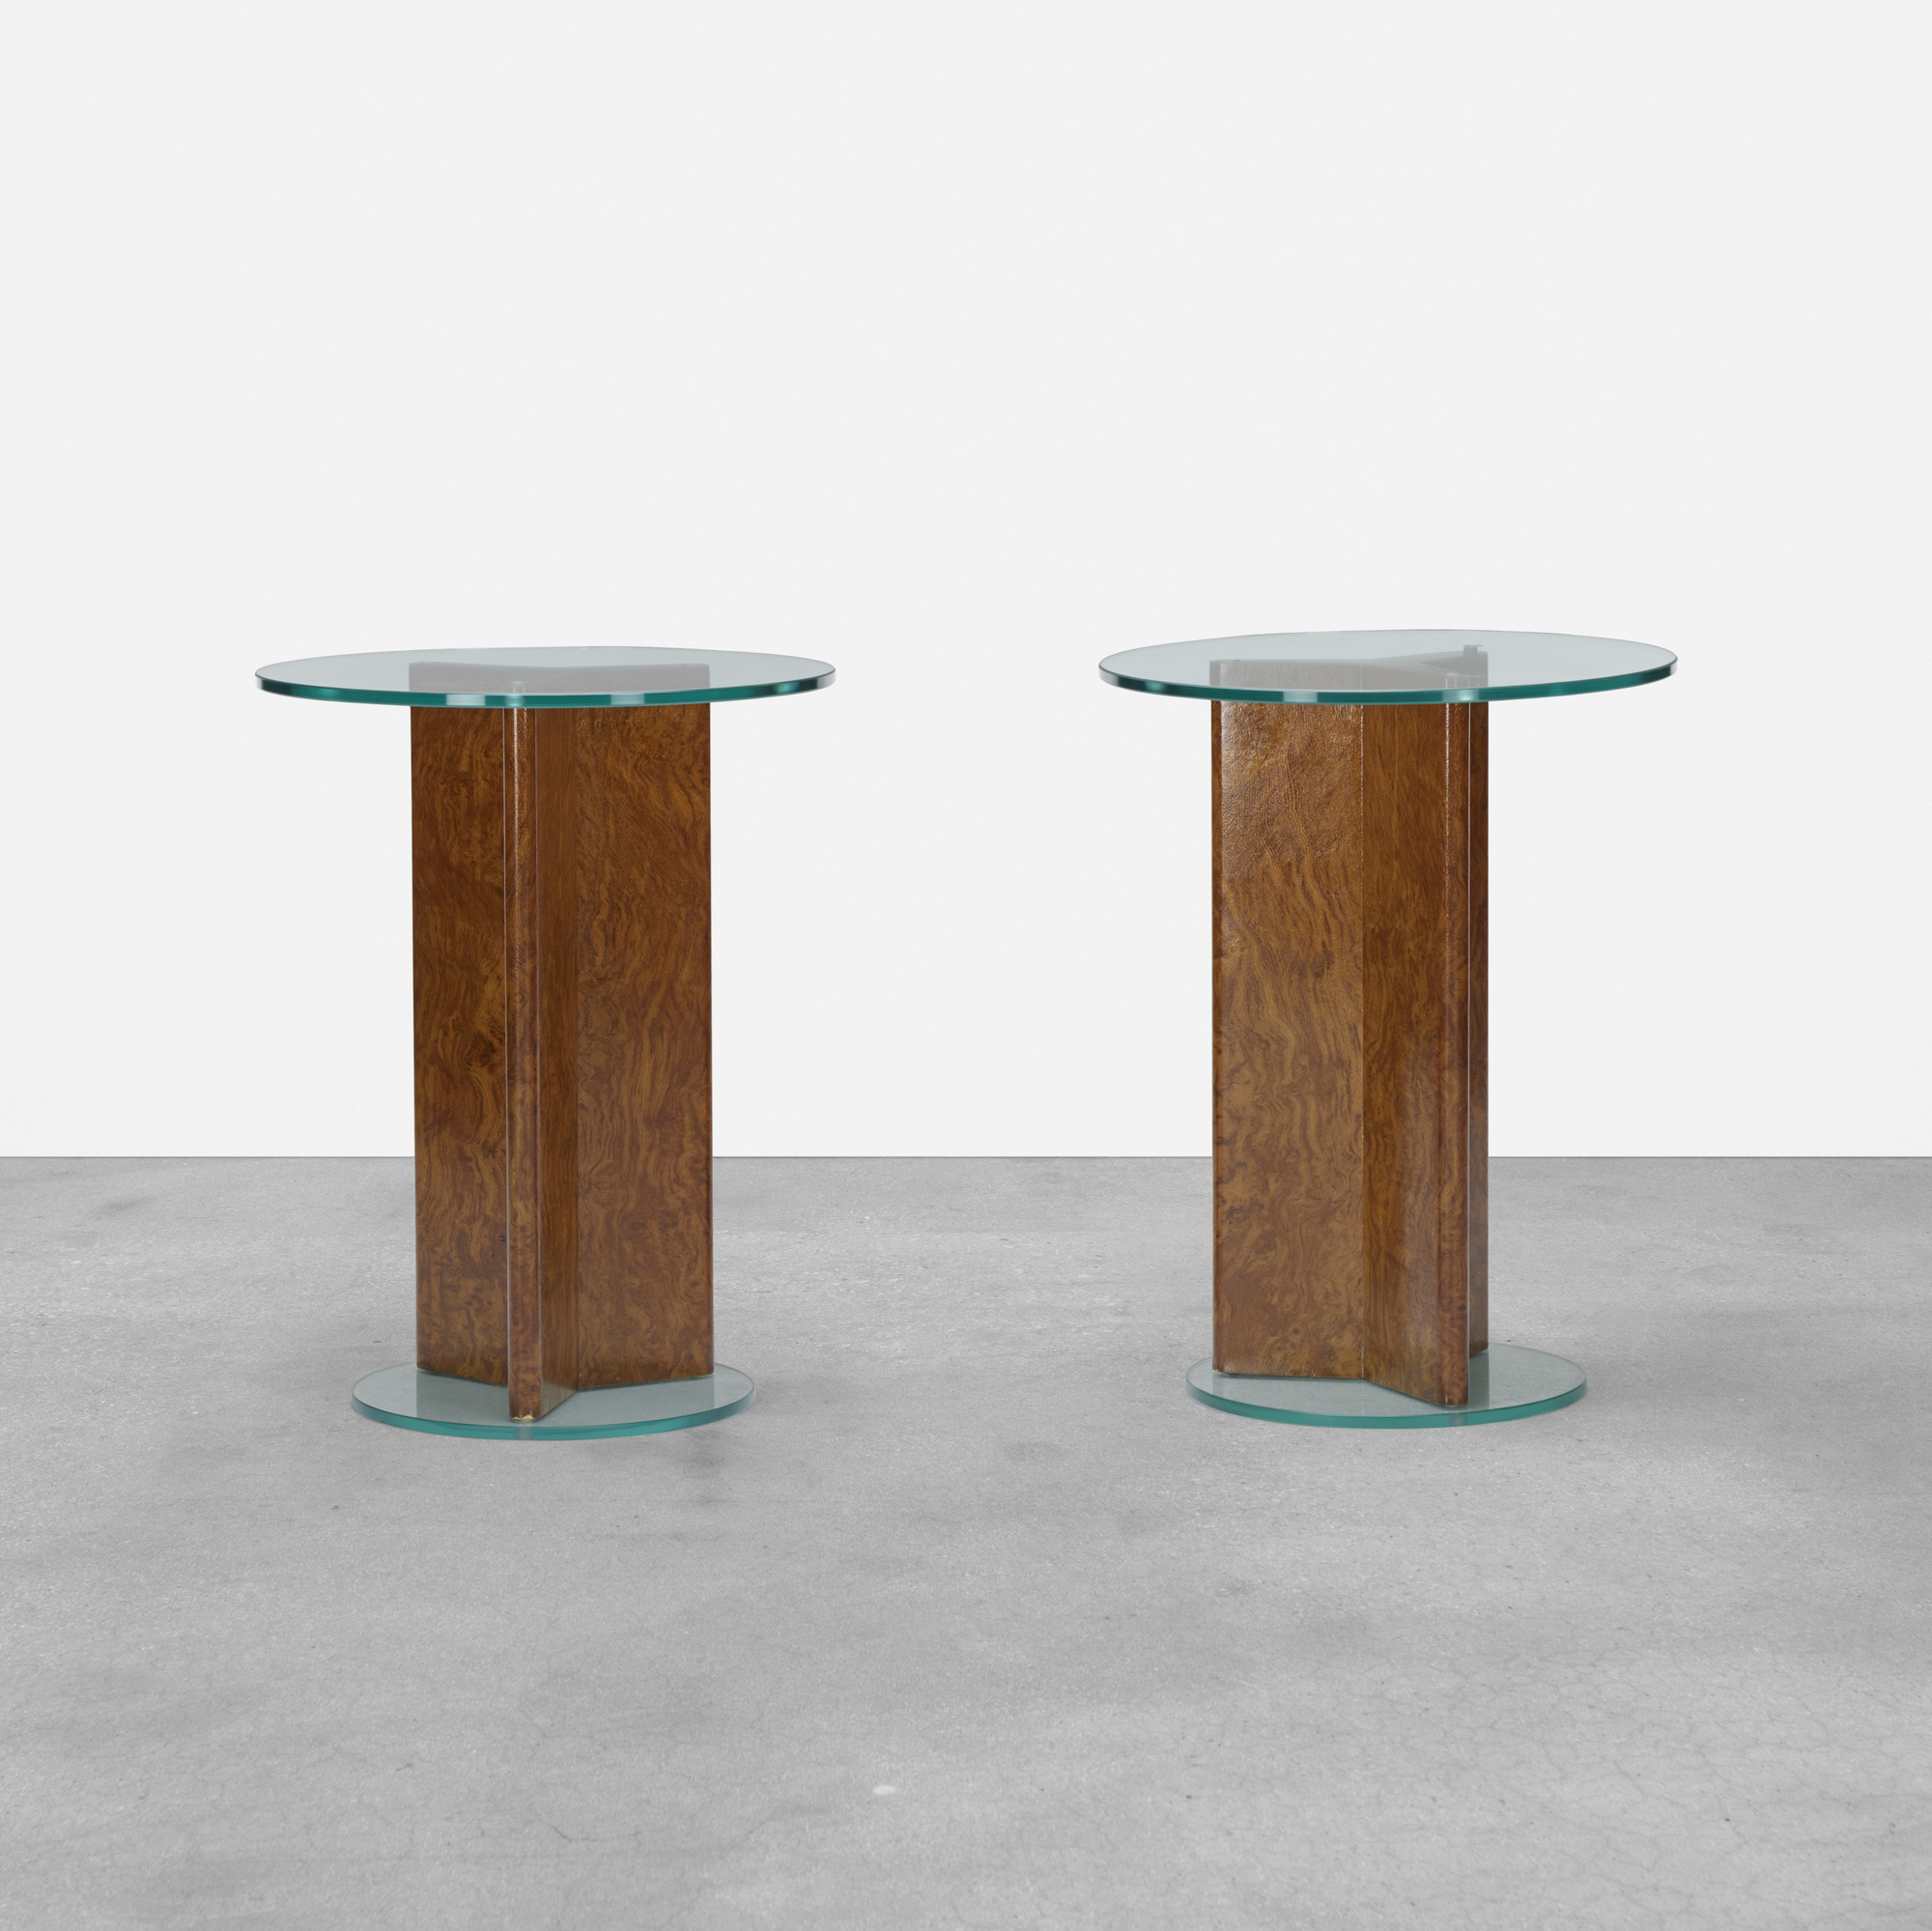 199: Samuel Marx / pair of occasional tables from the Morton D. May House (1 of 3)